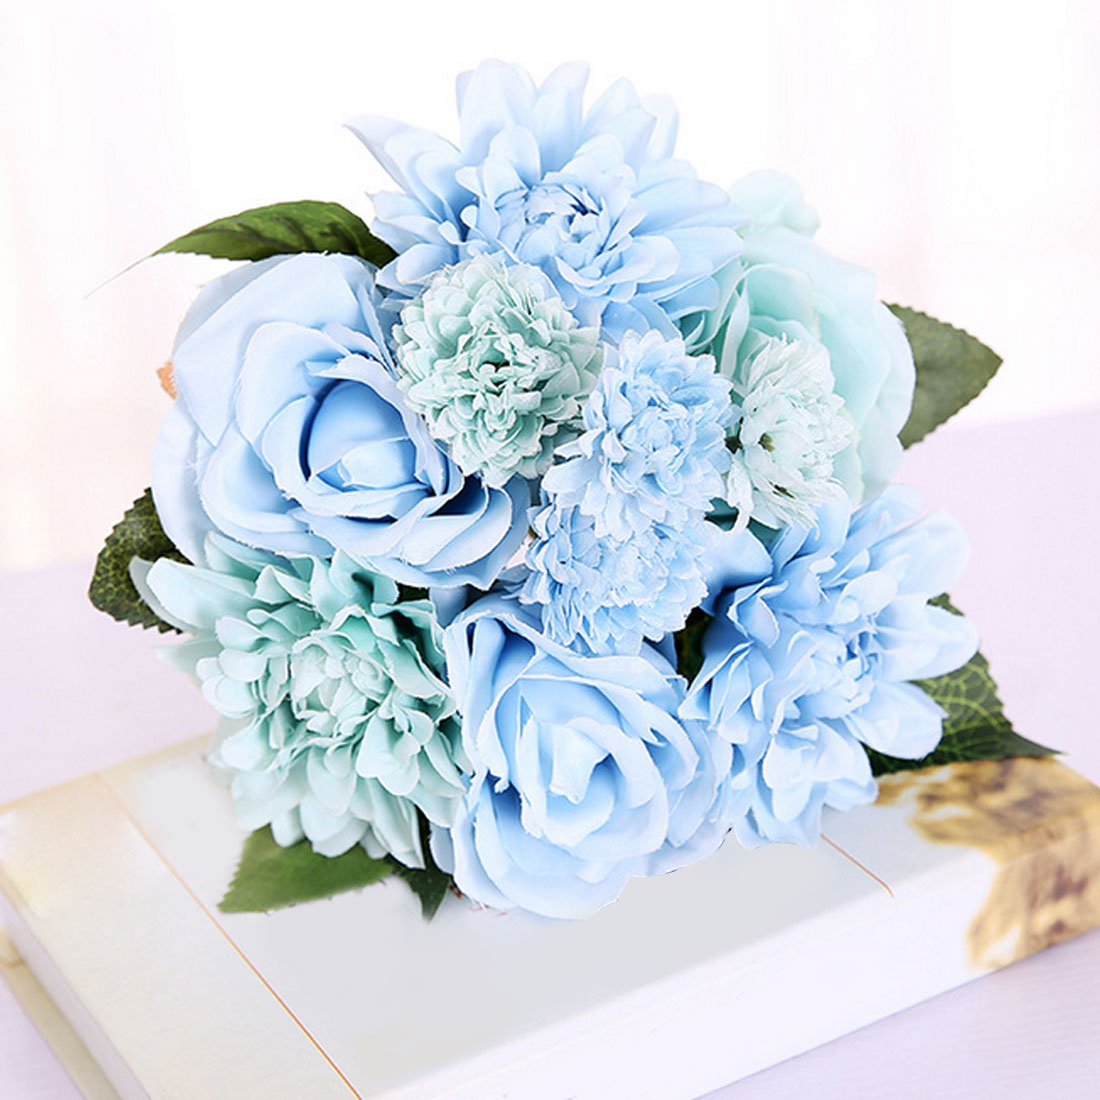 Fall Vivid Fake Leaf Wedding Flower Bridal Bouquets